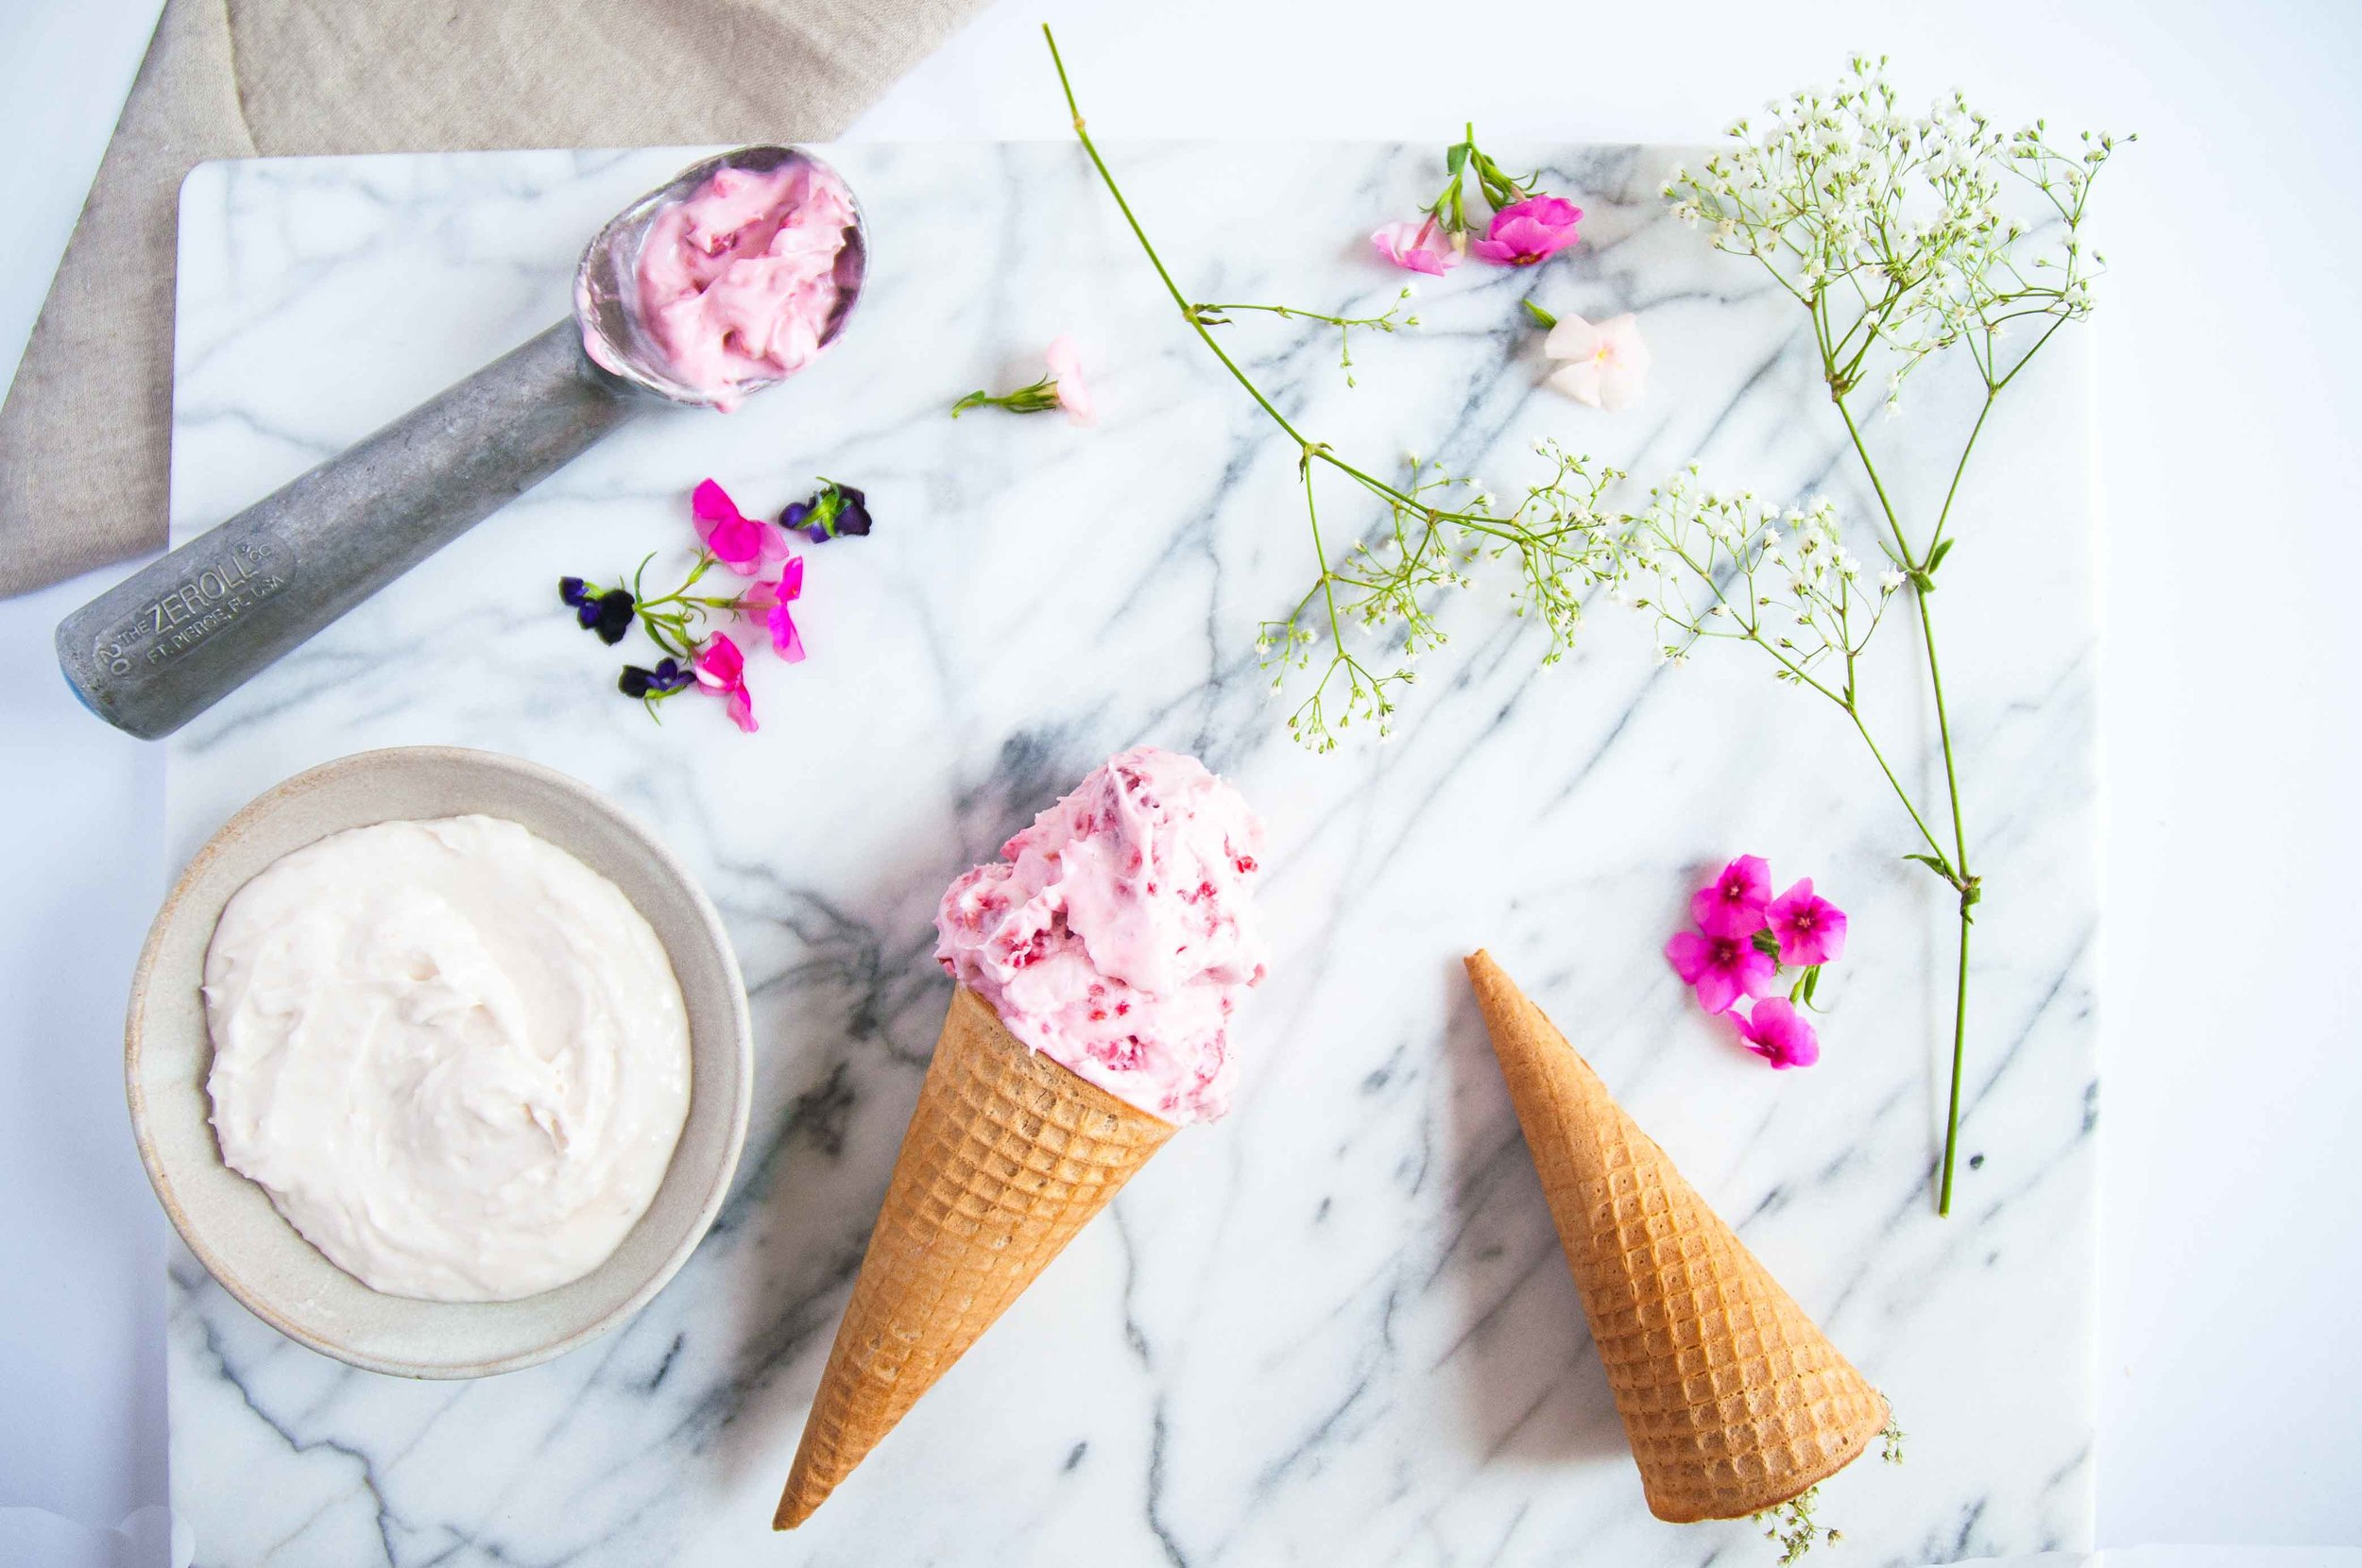 raspberry-coconut-vegan-ice-cream-fried-parsley